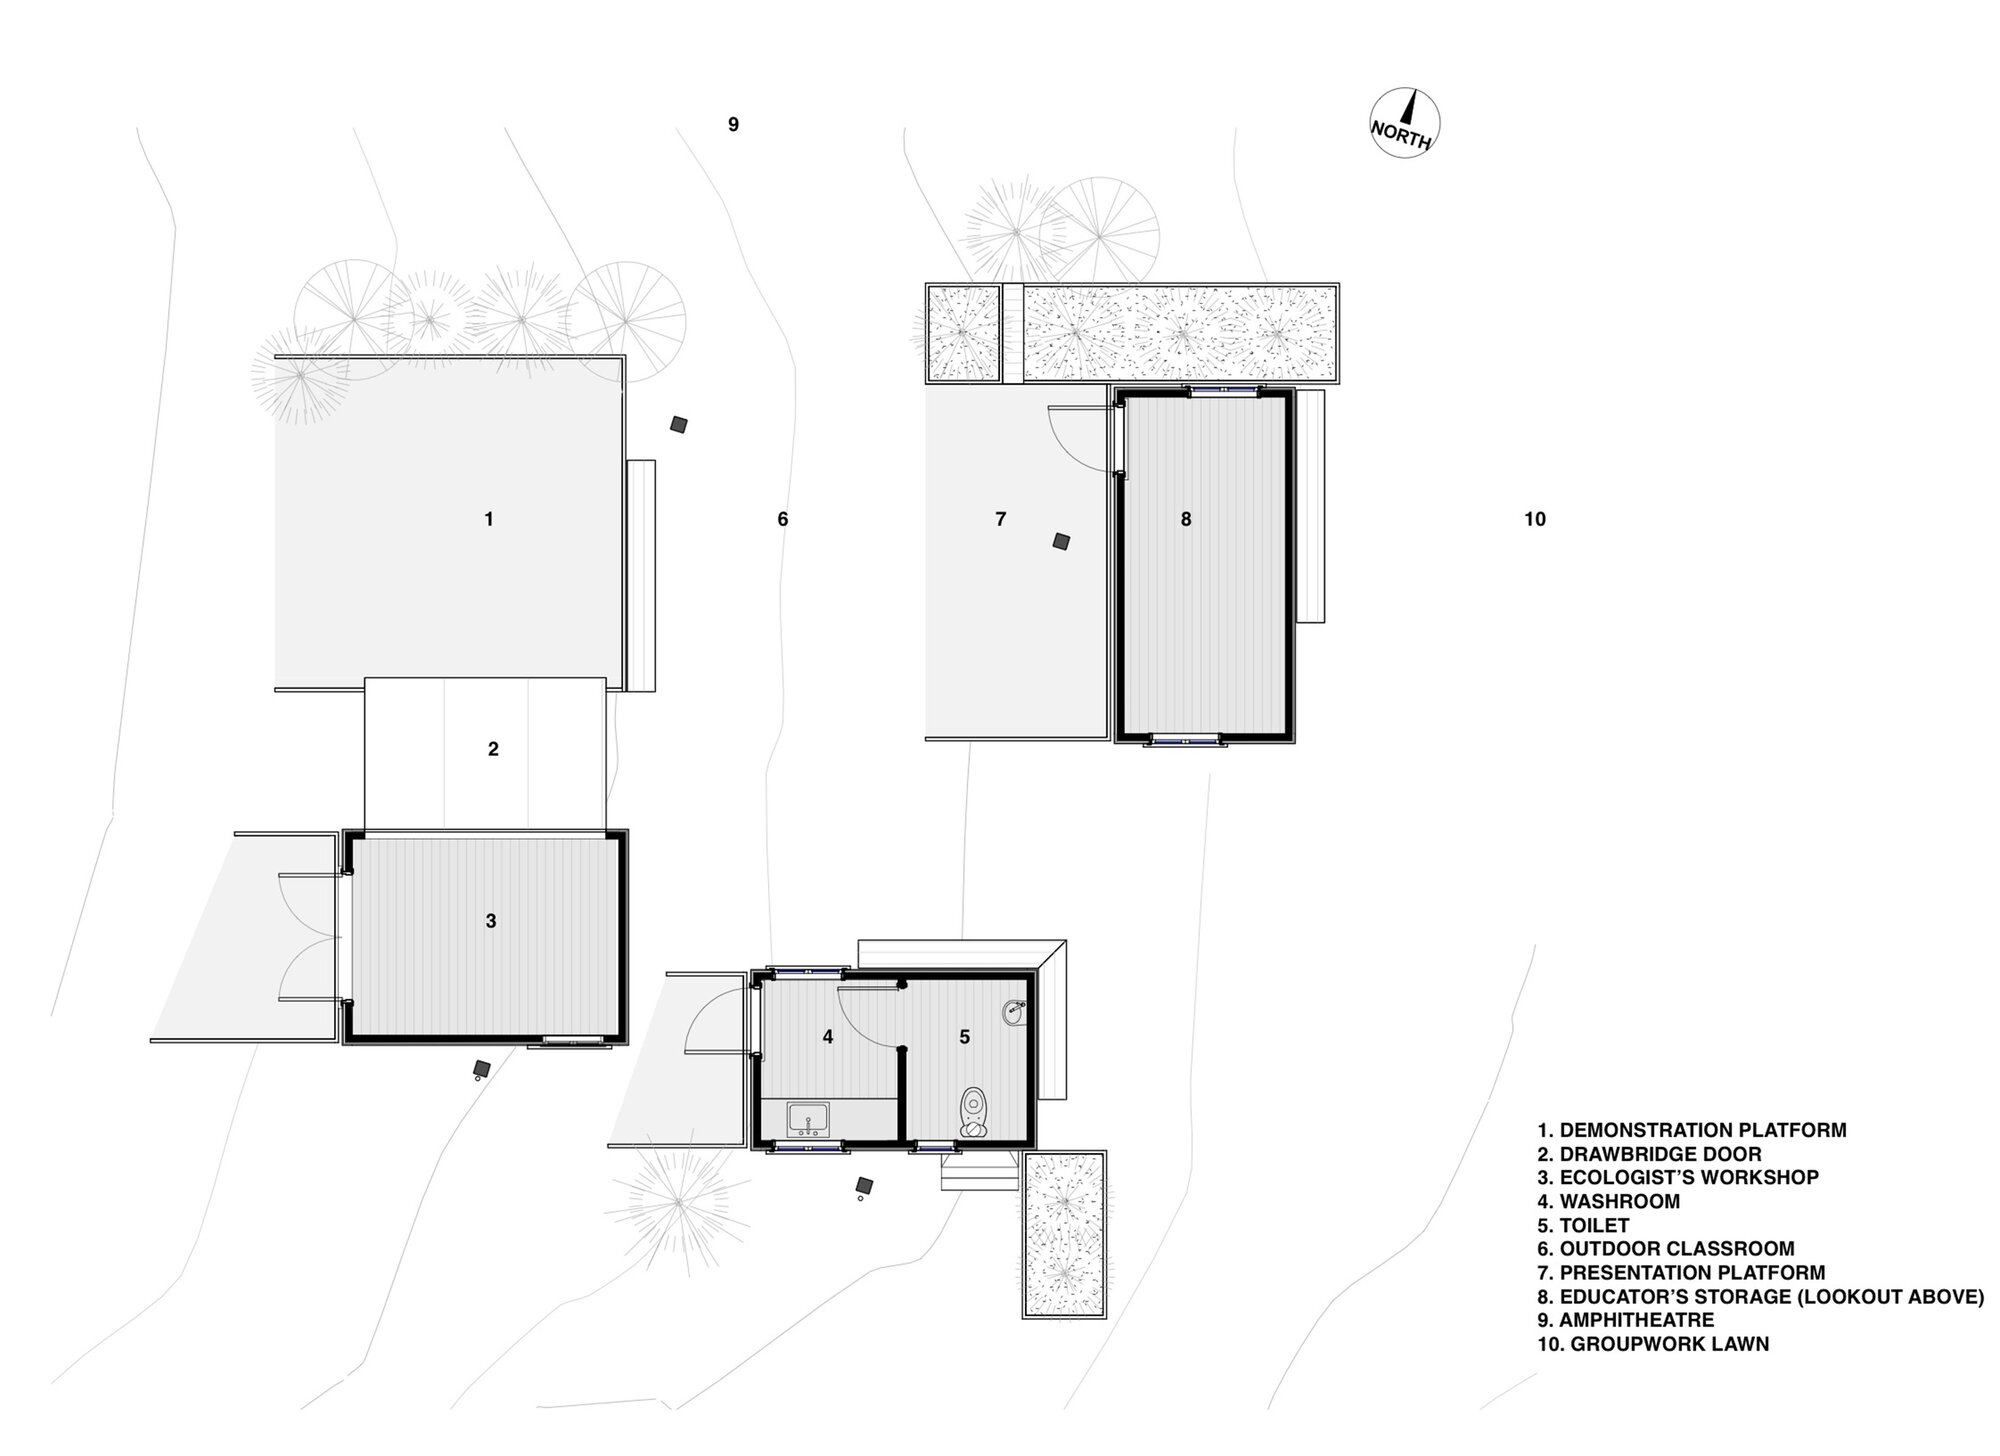 Shelter Floor Plan With Fireplace : The welcome shelter in longbush ecosanctuary by sarosh mulla